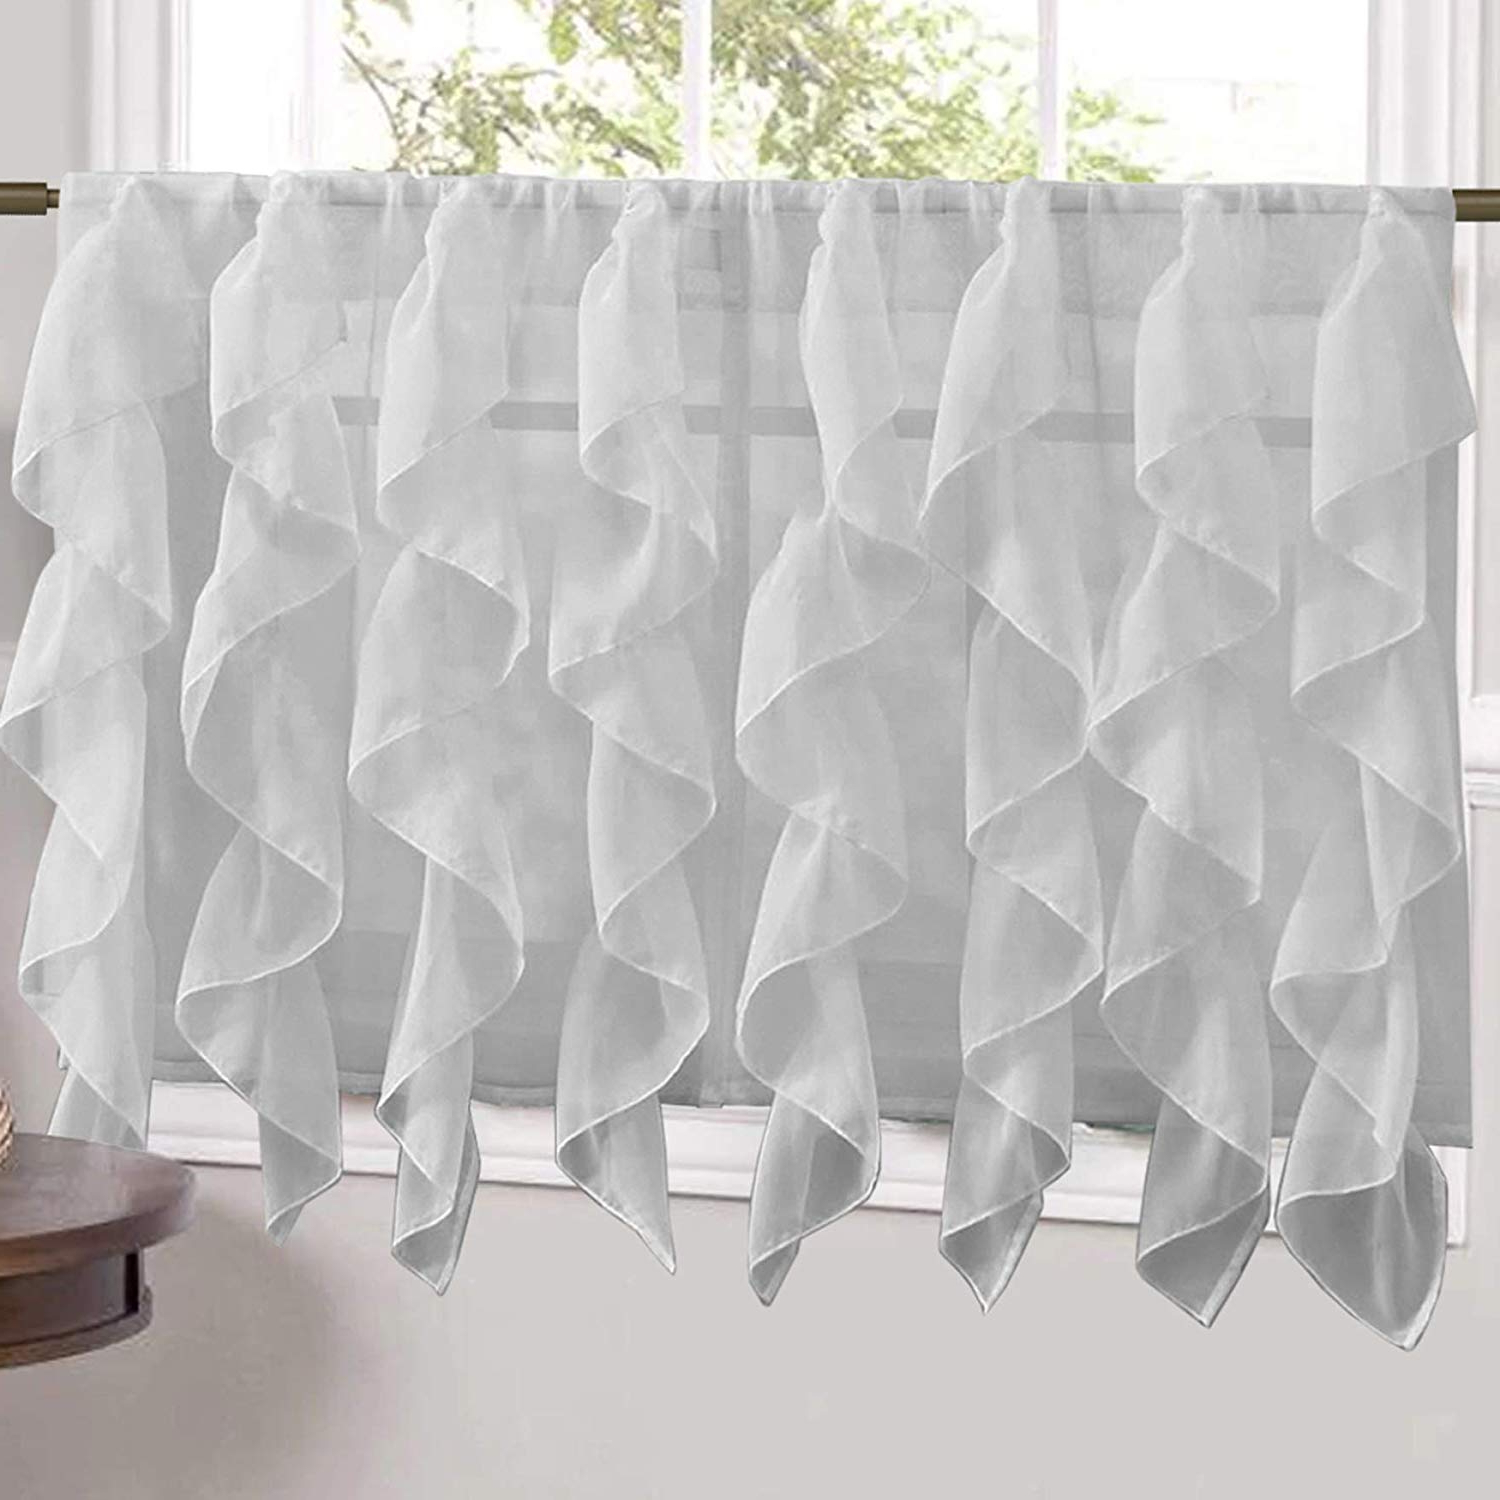 "Famous Silver Vertical Ruffled Waterfall Valance And Curtain Tiers Throughout Sweet Home Collection Veritcal Kitchen Curtain Sheer Cascading Ruffle  Waterfall Window Treatment – Choice Of Valance, 24"" Or 36"" Teir, And Kit  Tier (Gallery 17 of 20)"